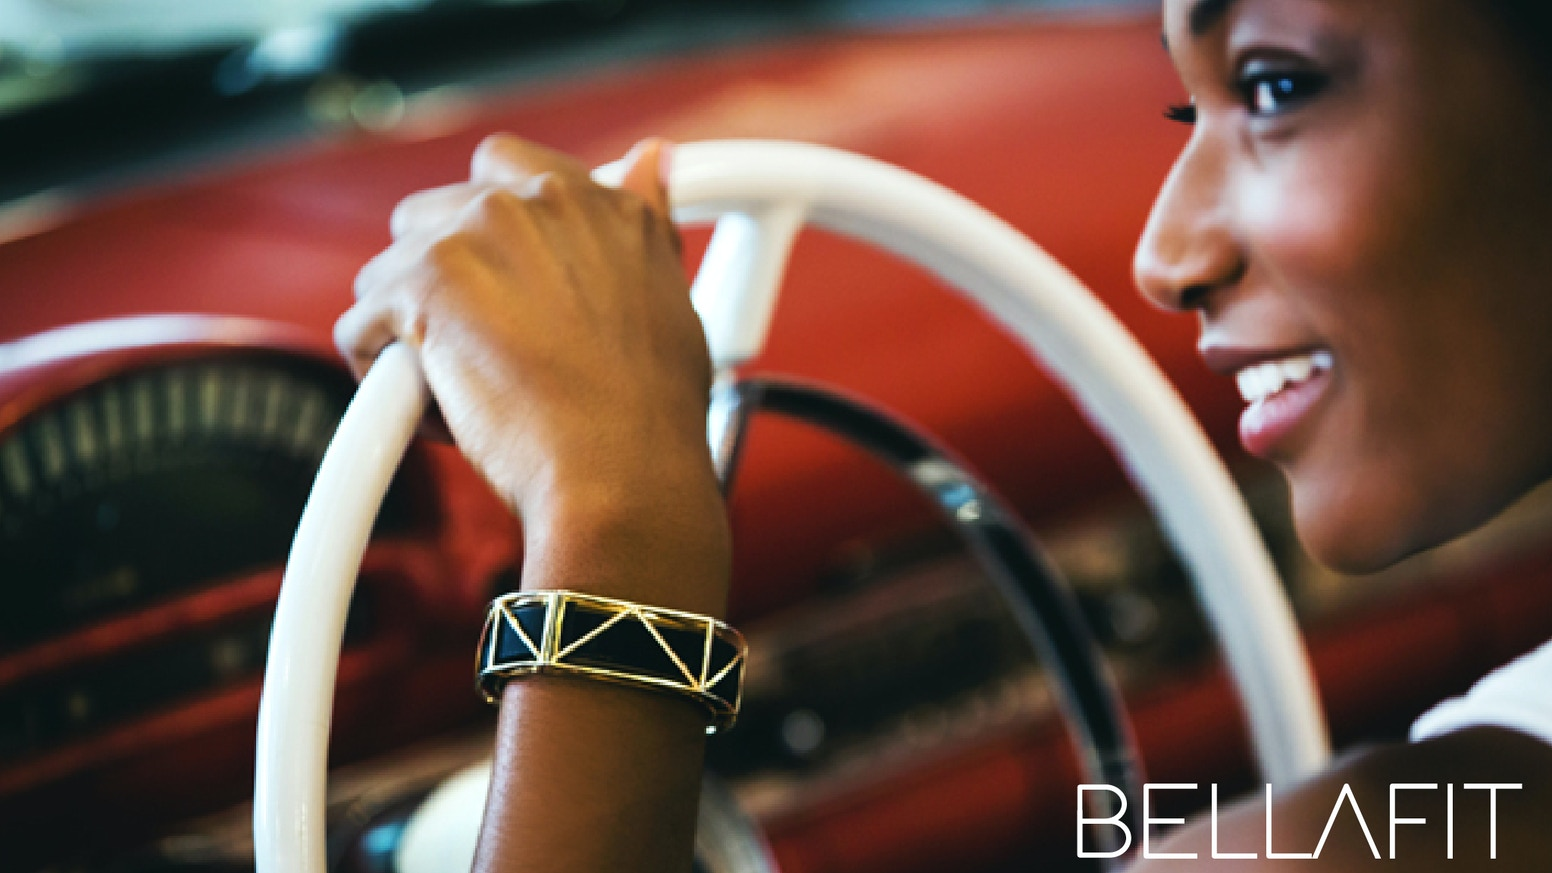 Bellafit complements your fitness tracker, transforming your wearable device into a piece of statement jewelry. Click below and Pre-Order yours!